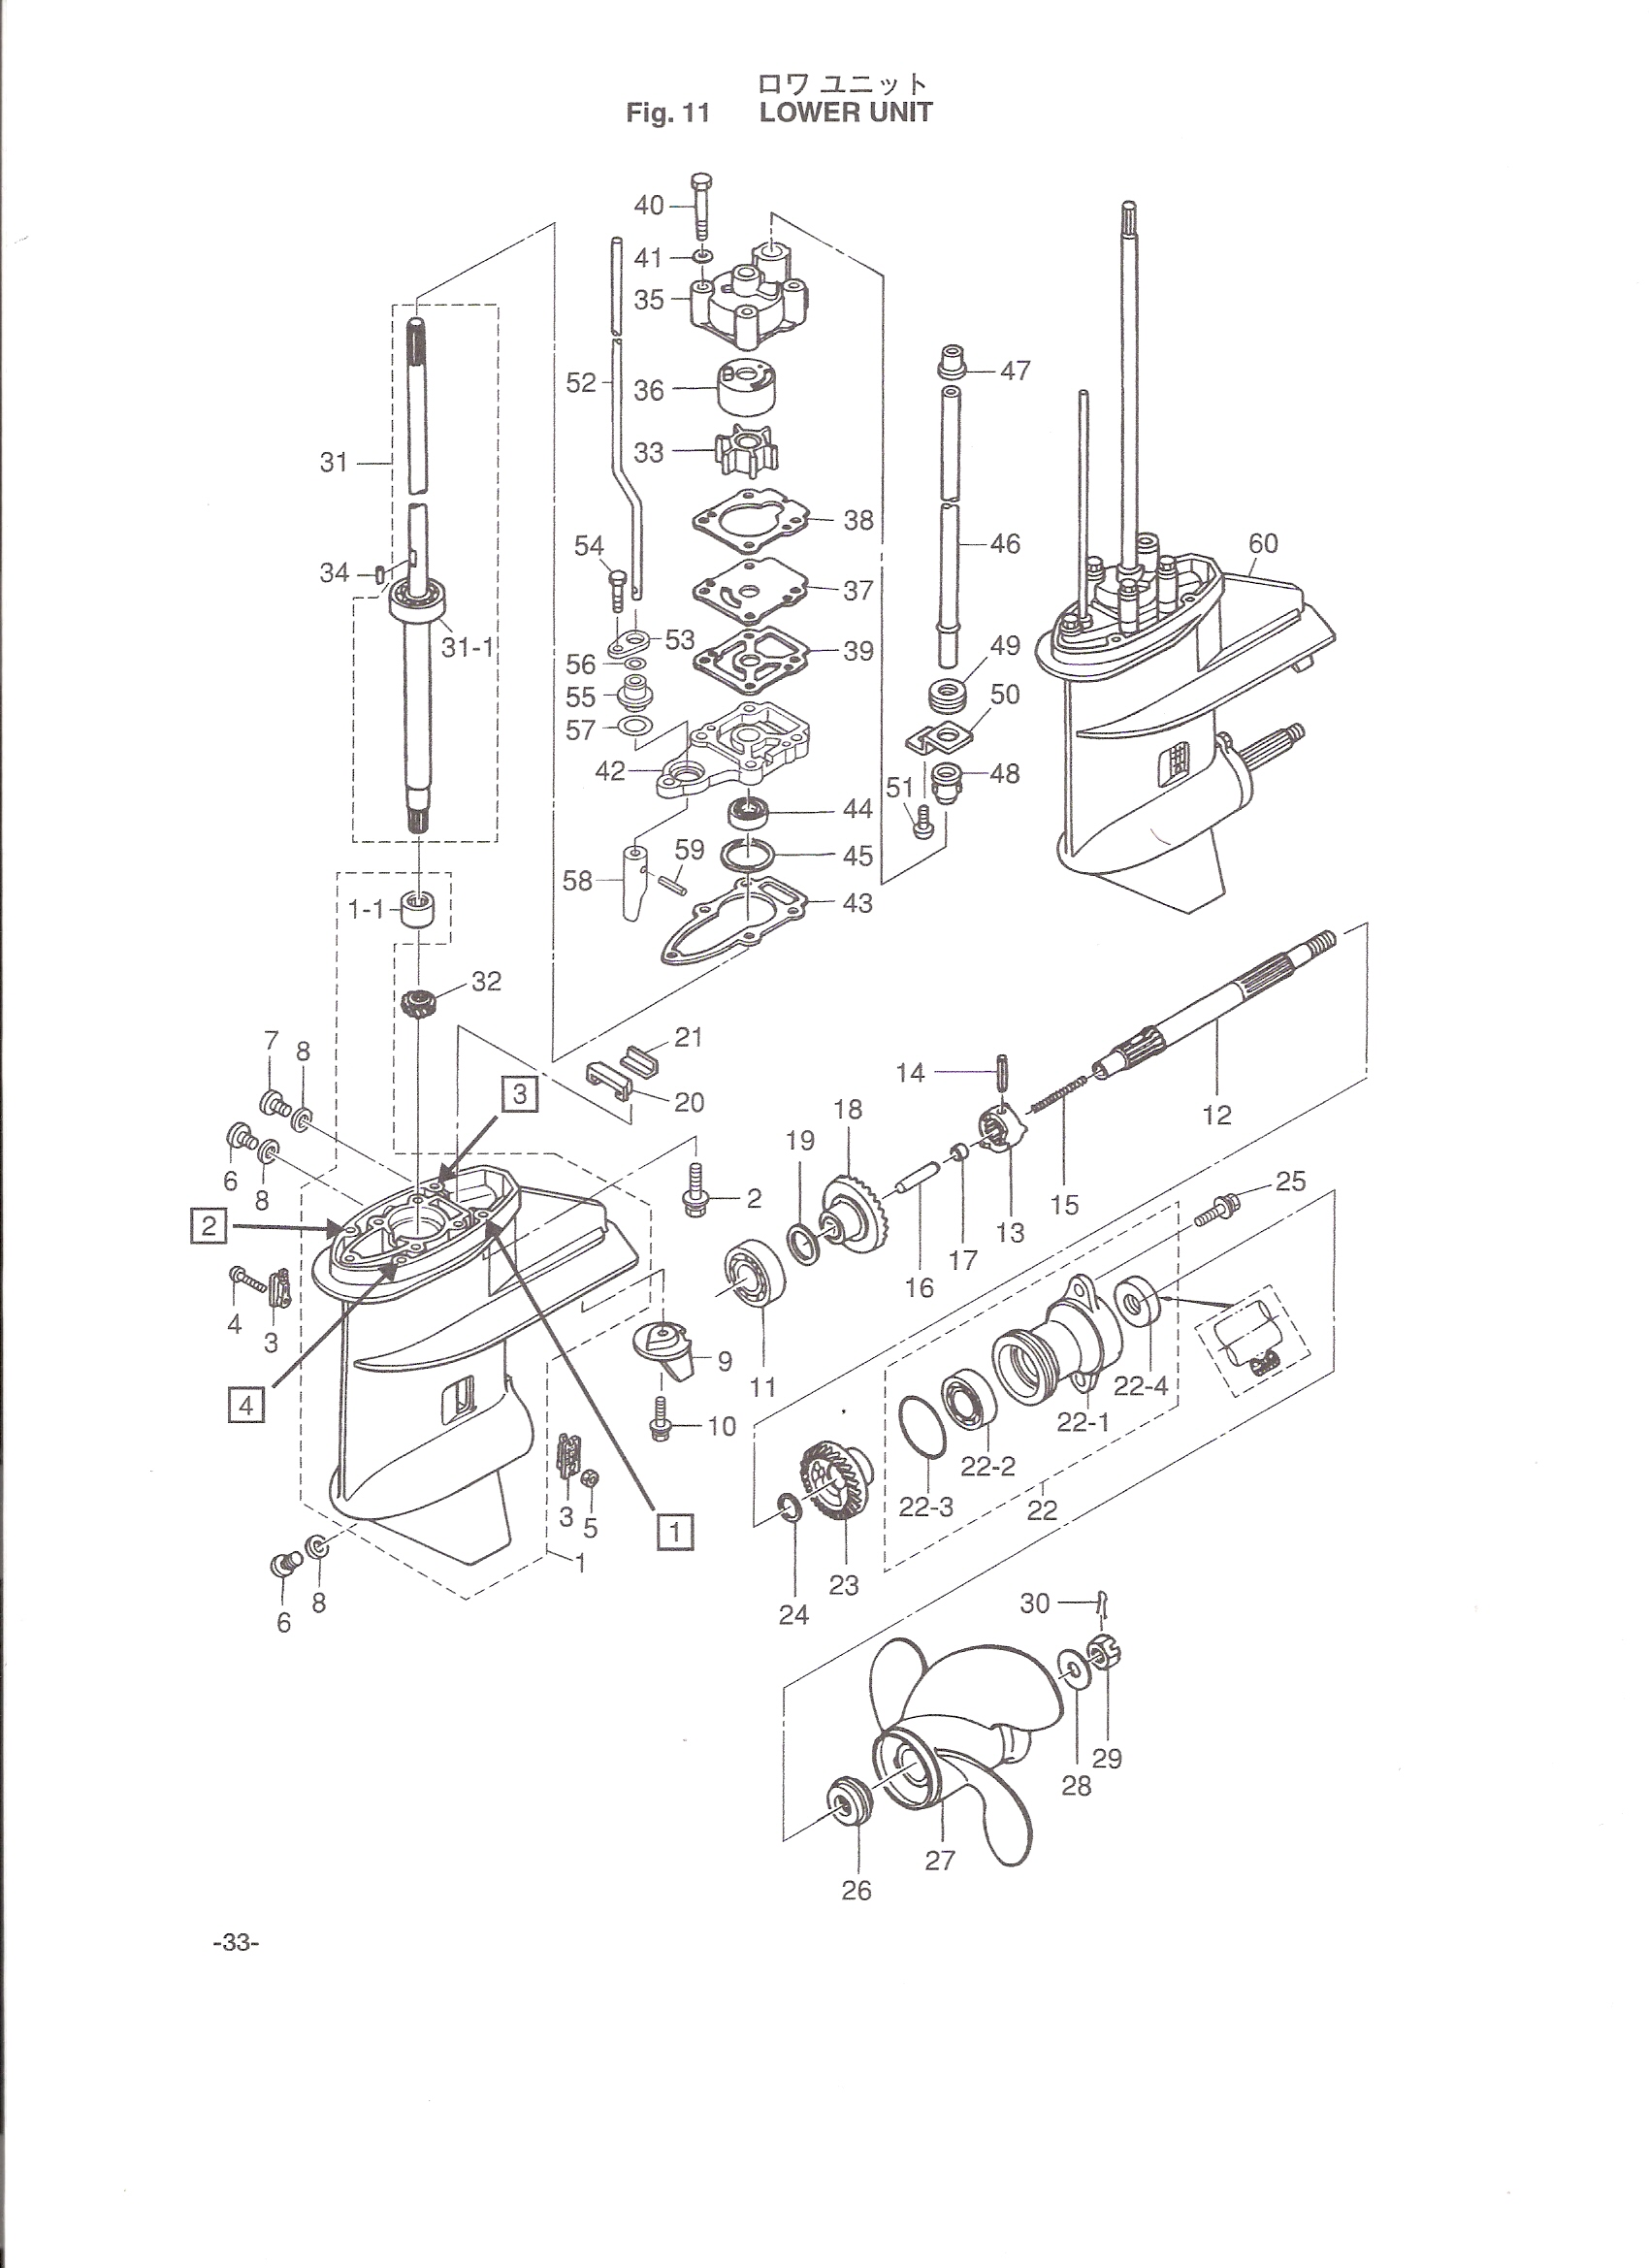 Please Supply Diagram Showing How To Service Leg Of 9 8hp Tohatsu 20 HP 4 Stroke Remote Steering Control Toyota Wiring Diagram On Be Sure To Shift The Gearcase Into Forward Prior To Starting The Removal The Shift Rod ( 52) Will Need To Be Disconnected From The Linkage In The Lower